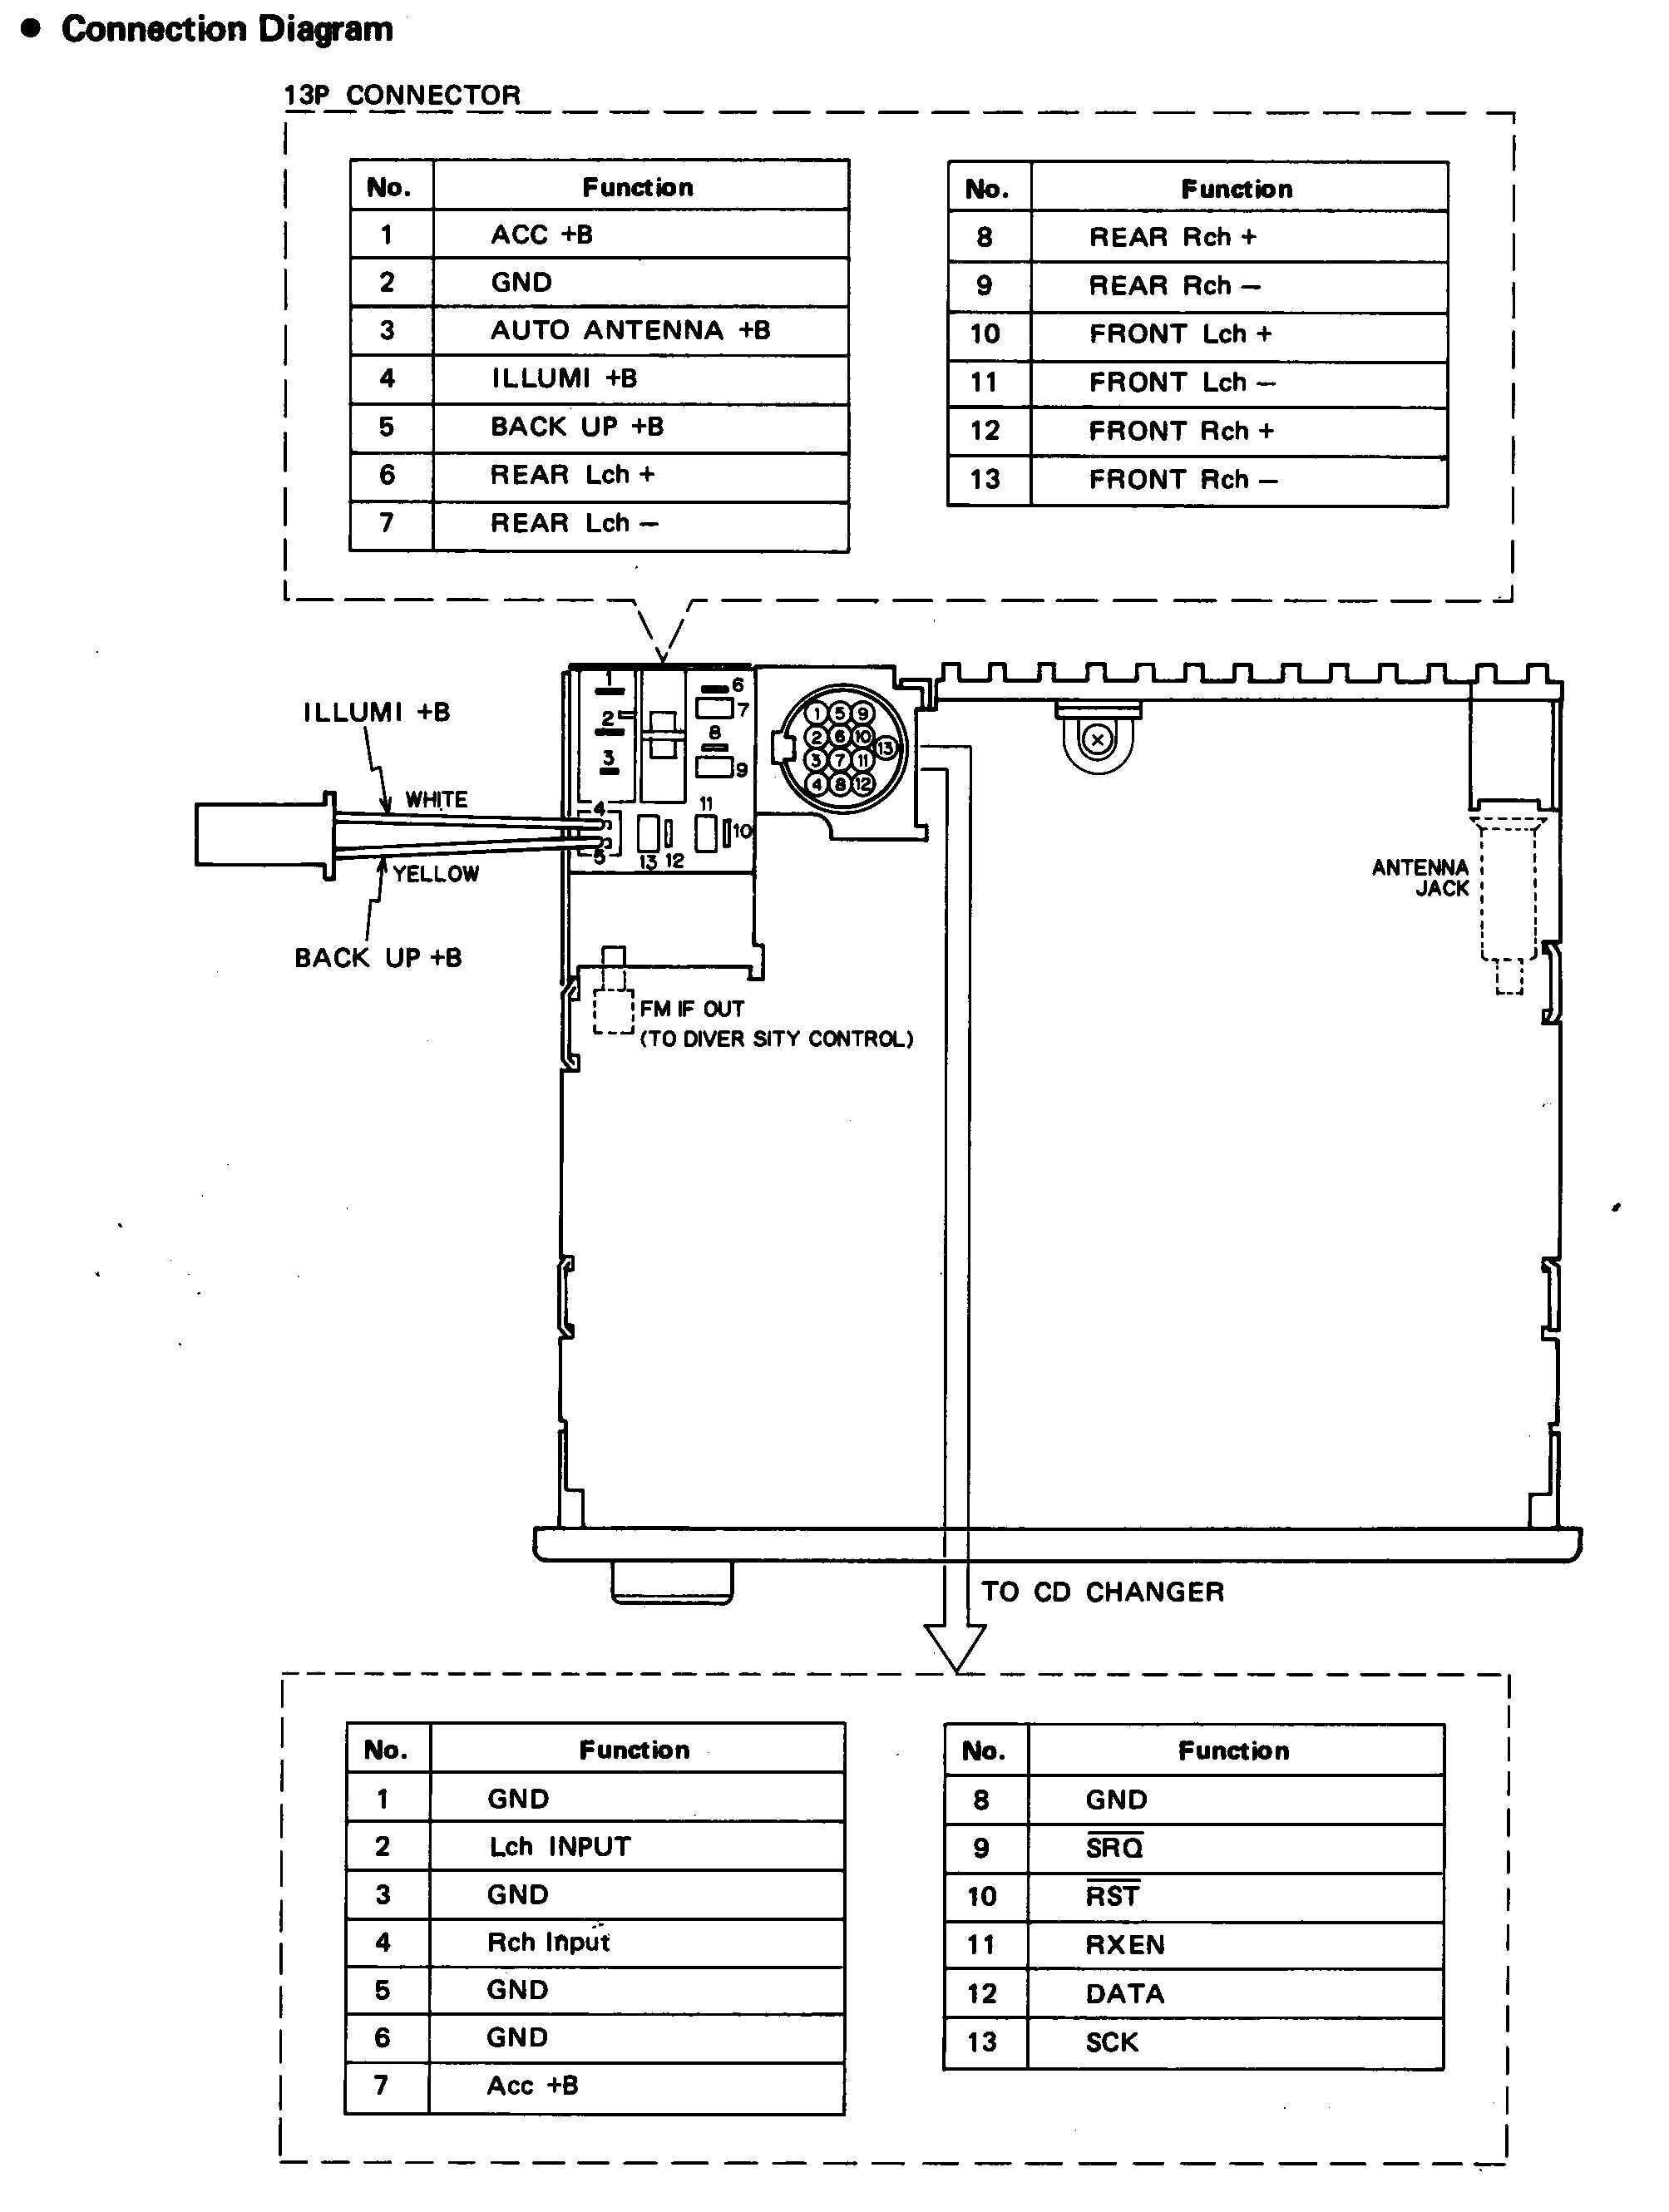 Factory Car Stereo Wiring Diagrams Car Stereo Wiring Diagram Bmw Car Radio Stereo Audio Wiring Diagram Of Factory Car Stereo Wiring Diagrams